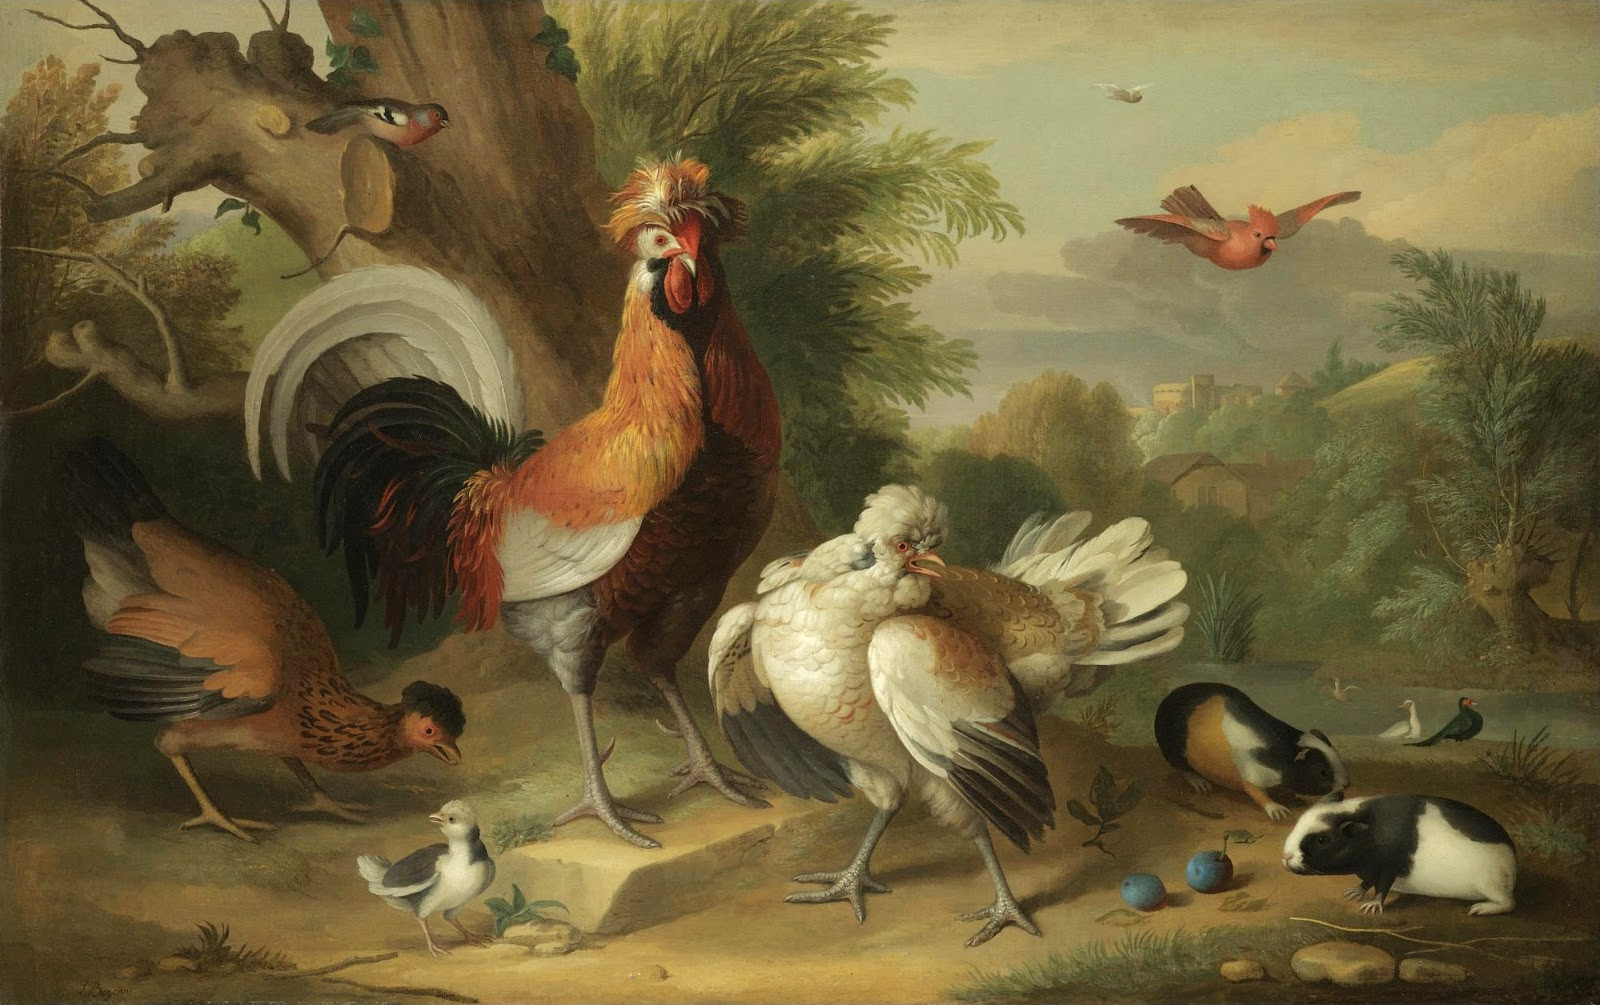 A Cockerel, Chickens, Other Birds With Guinea Pig